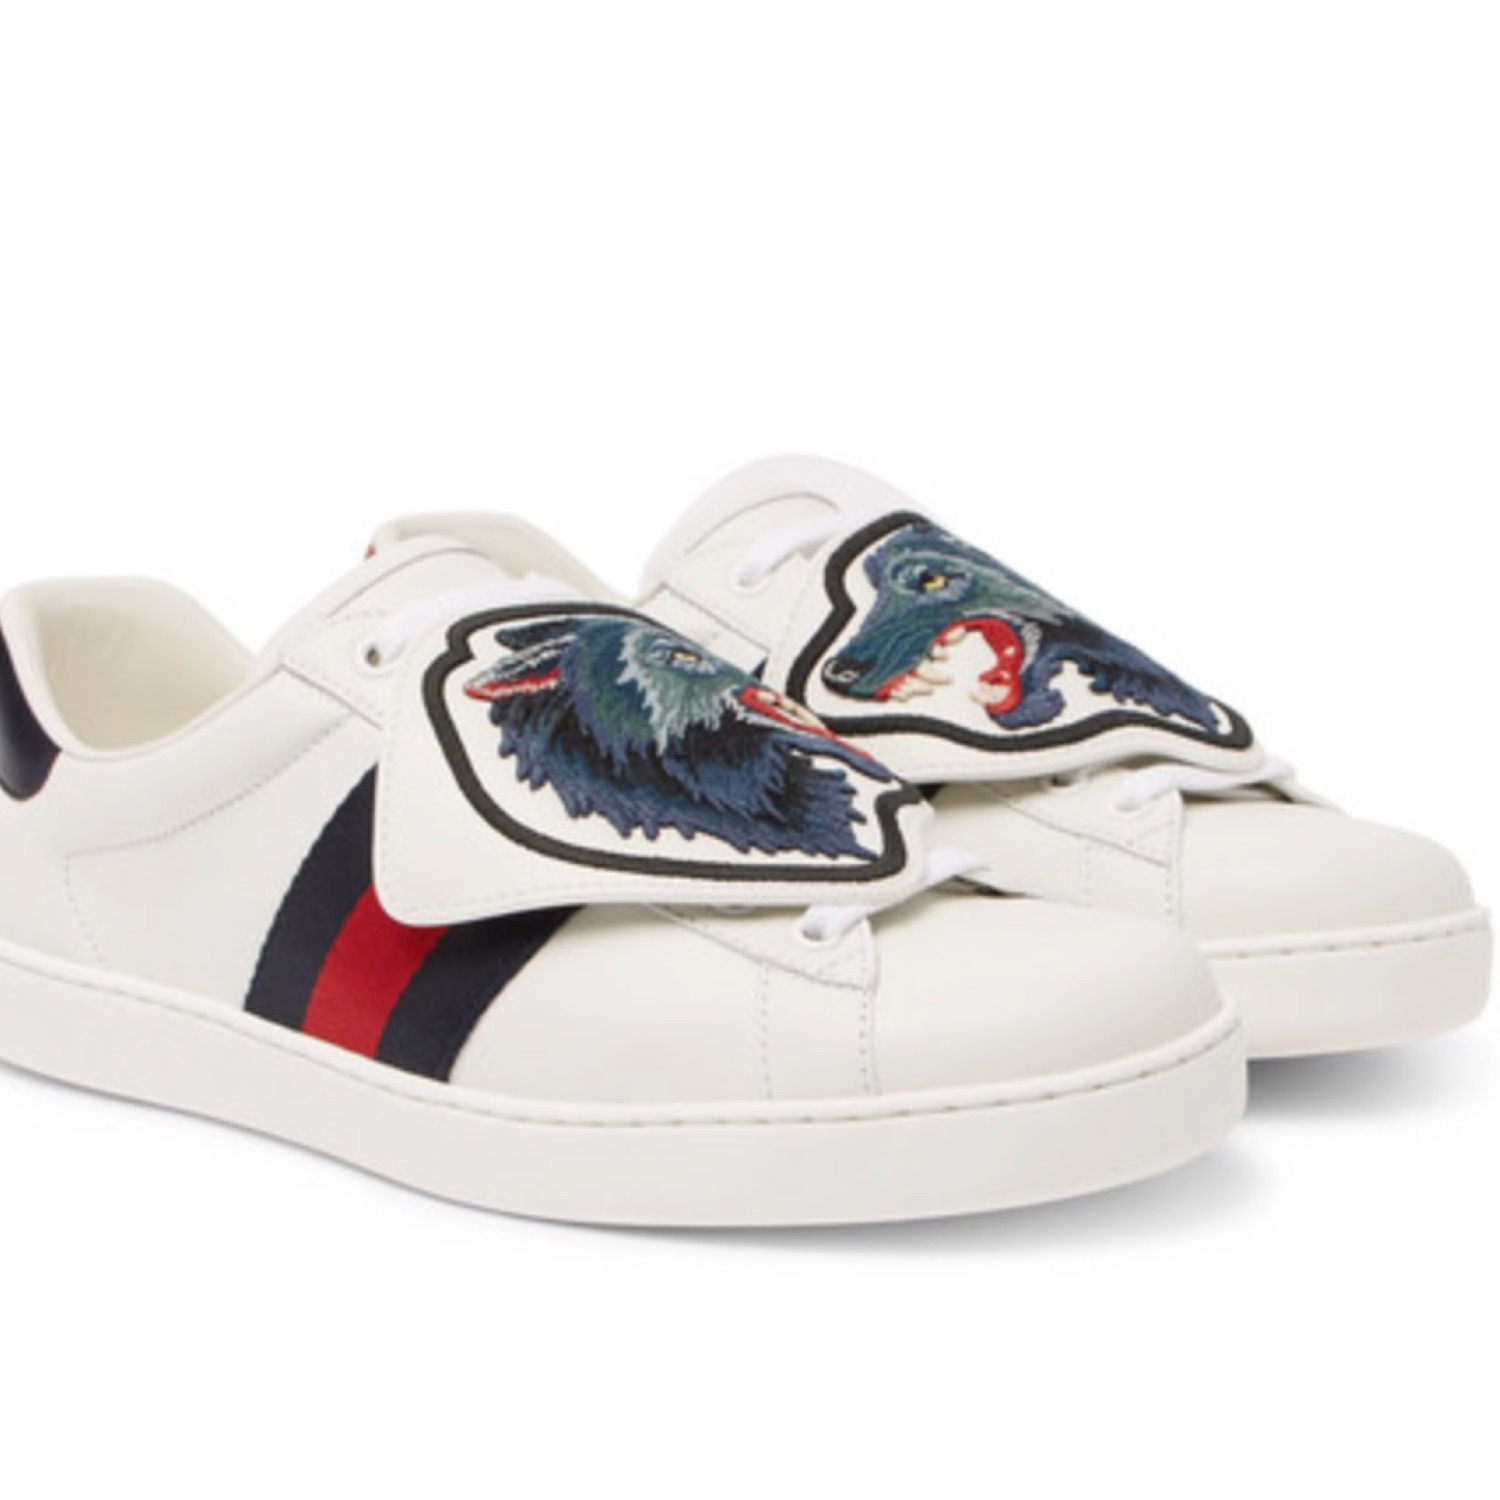 Gucci Wolf Emblem Leather Sneakers